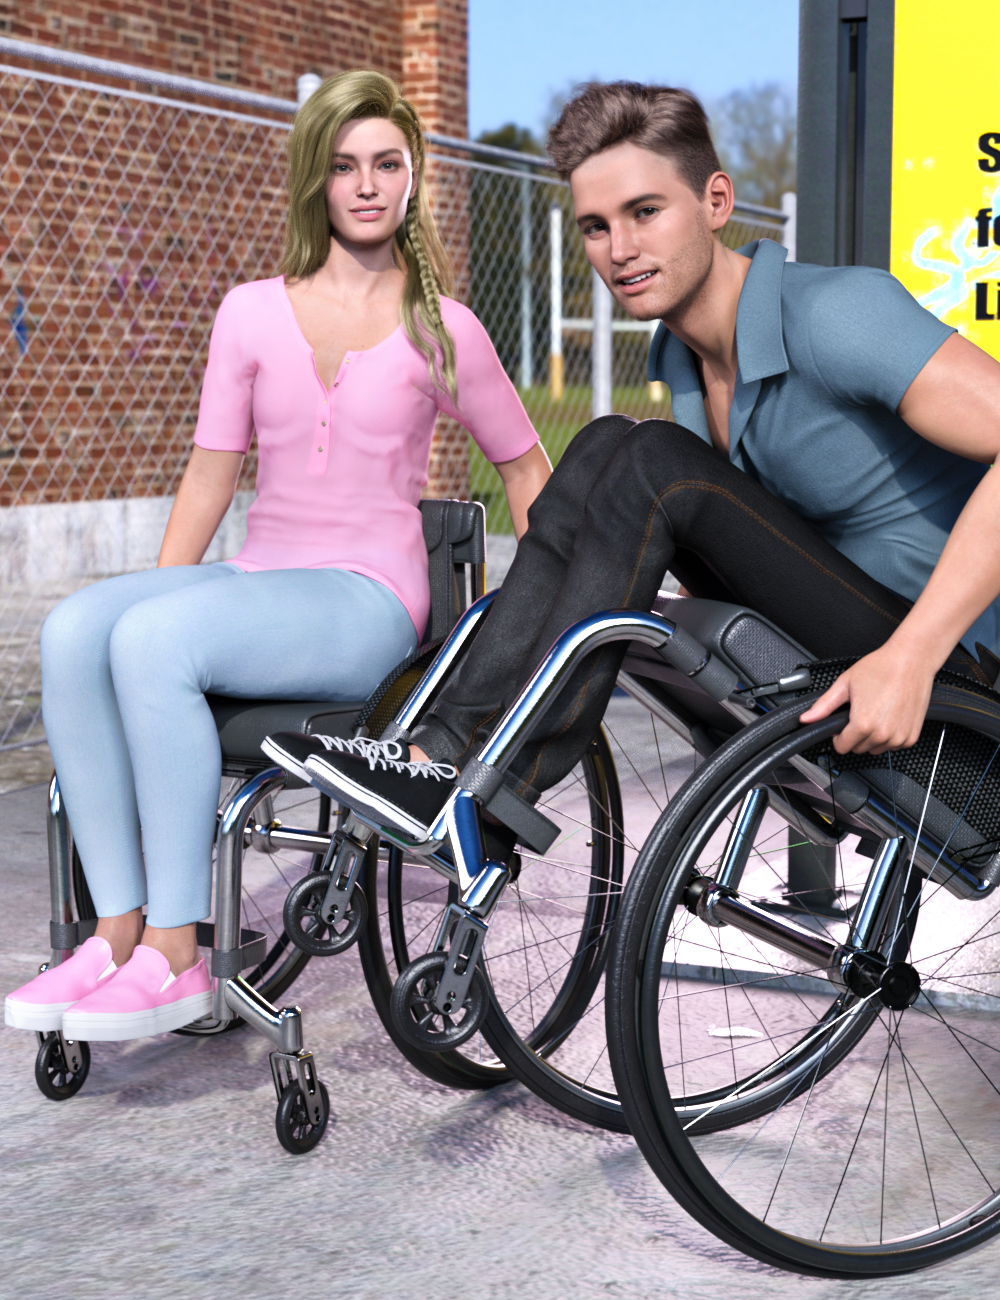 Z Everyday Wheelchair and Poses for Genesis 8.1 by: Zeddicuss, 3D Models by Daz 3D